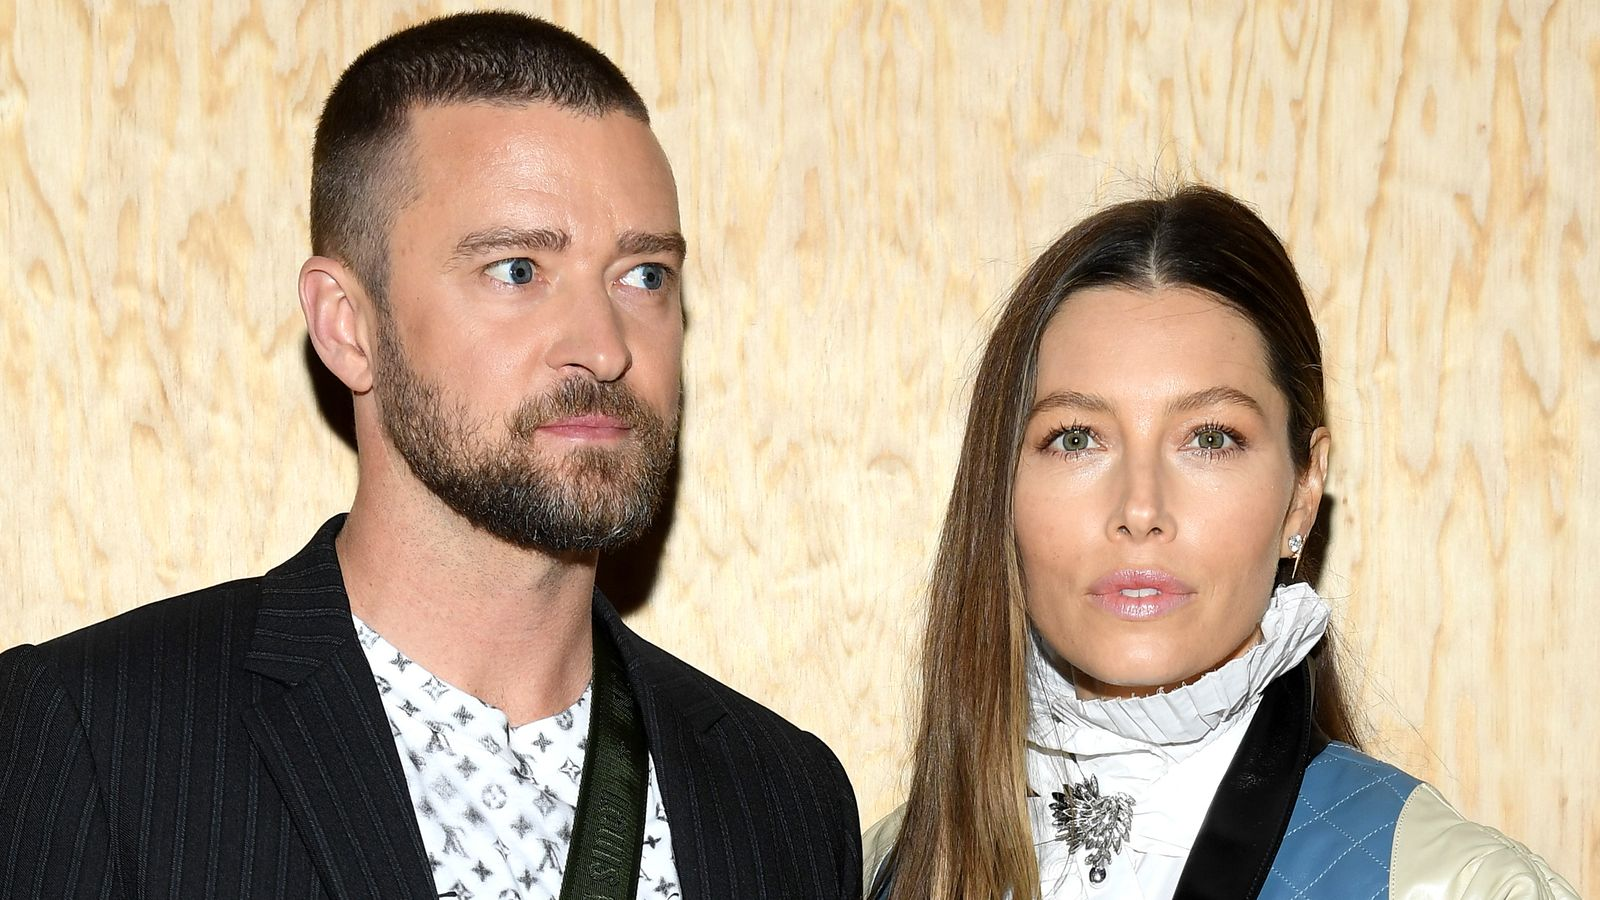 Justin Timberlake apologises to wife Jessica Biel for 'strong lapse in judgement' | Ents & Arts News | Sky News